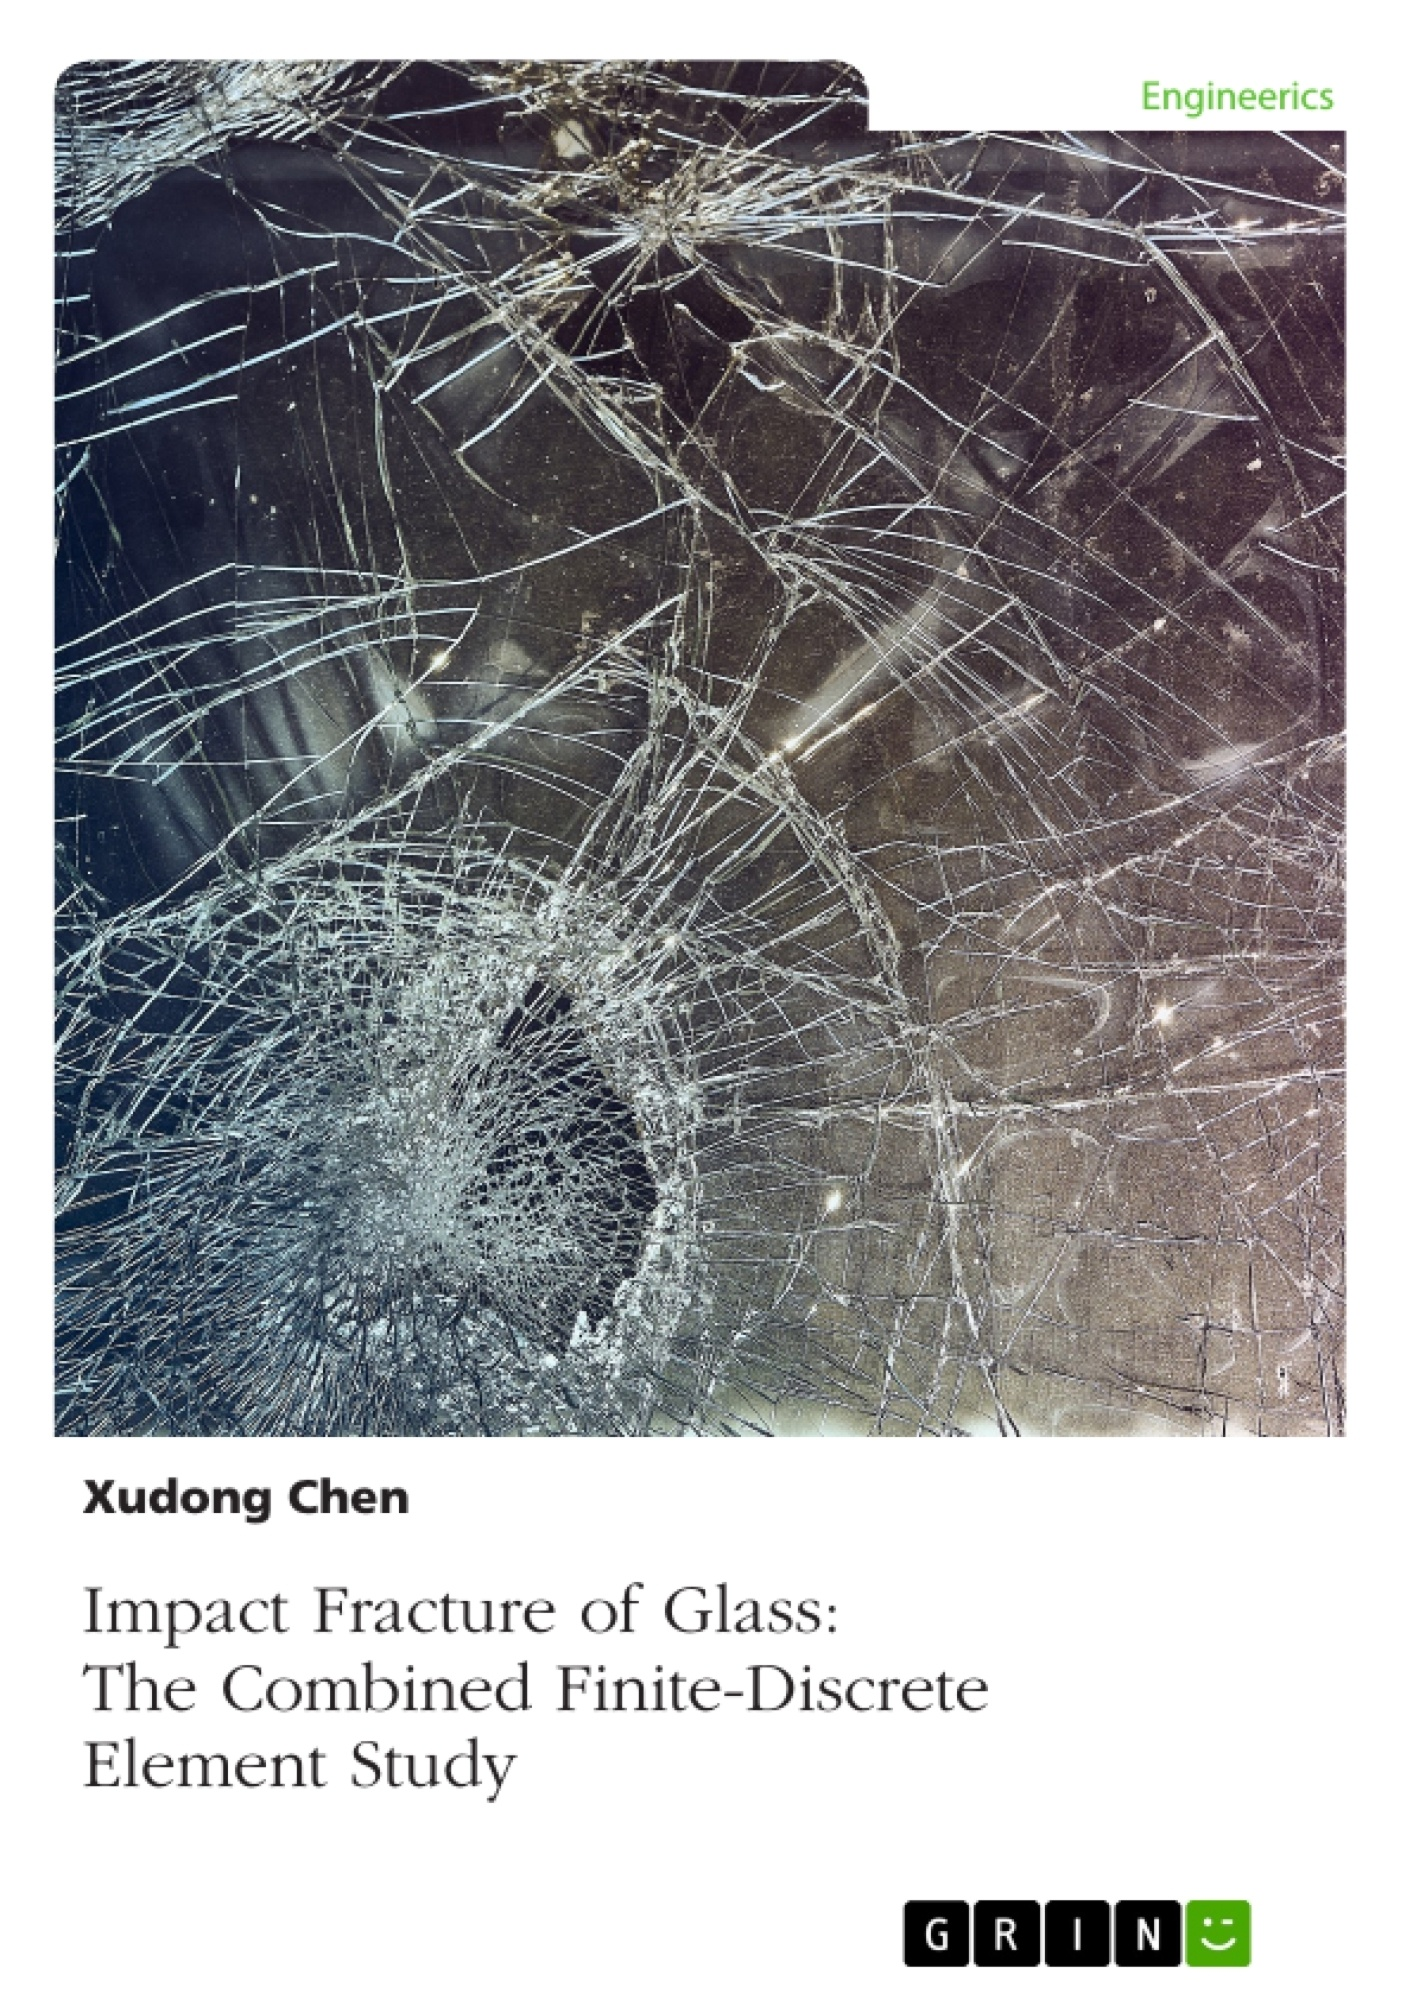 Title: Impact Fracture of Glass. The Combined Finite-Discrete Element Study